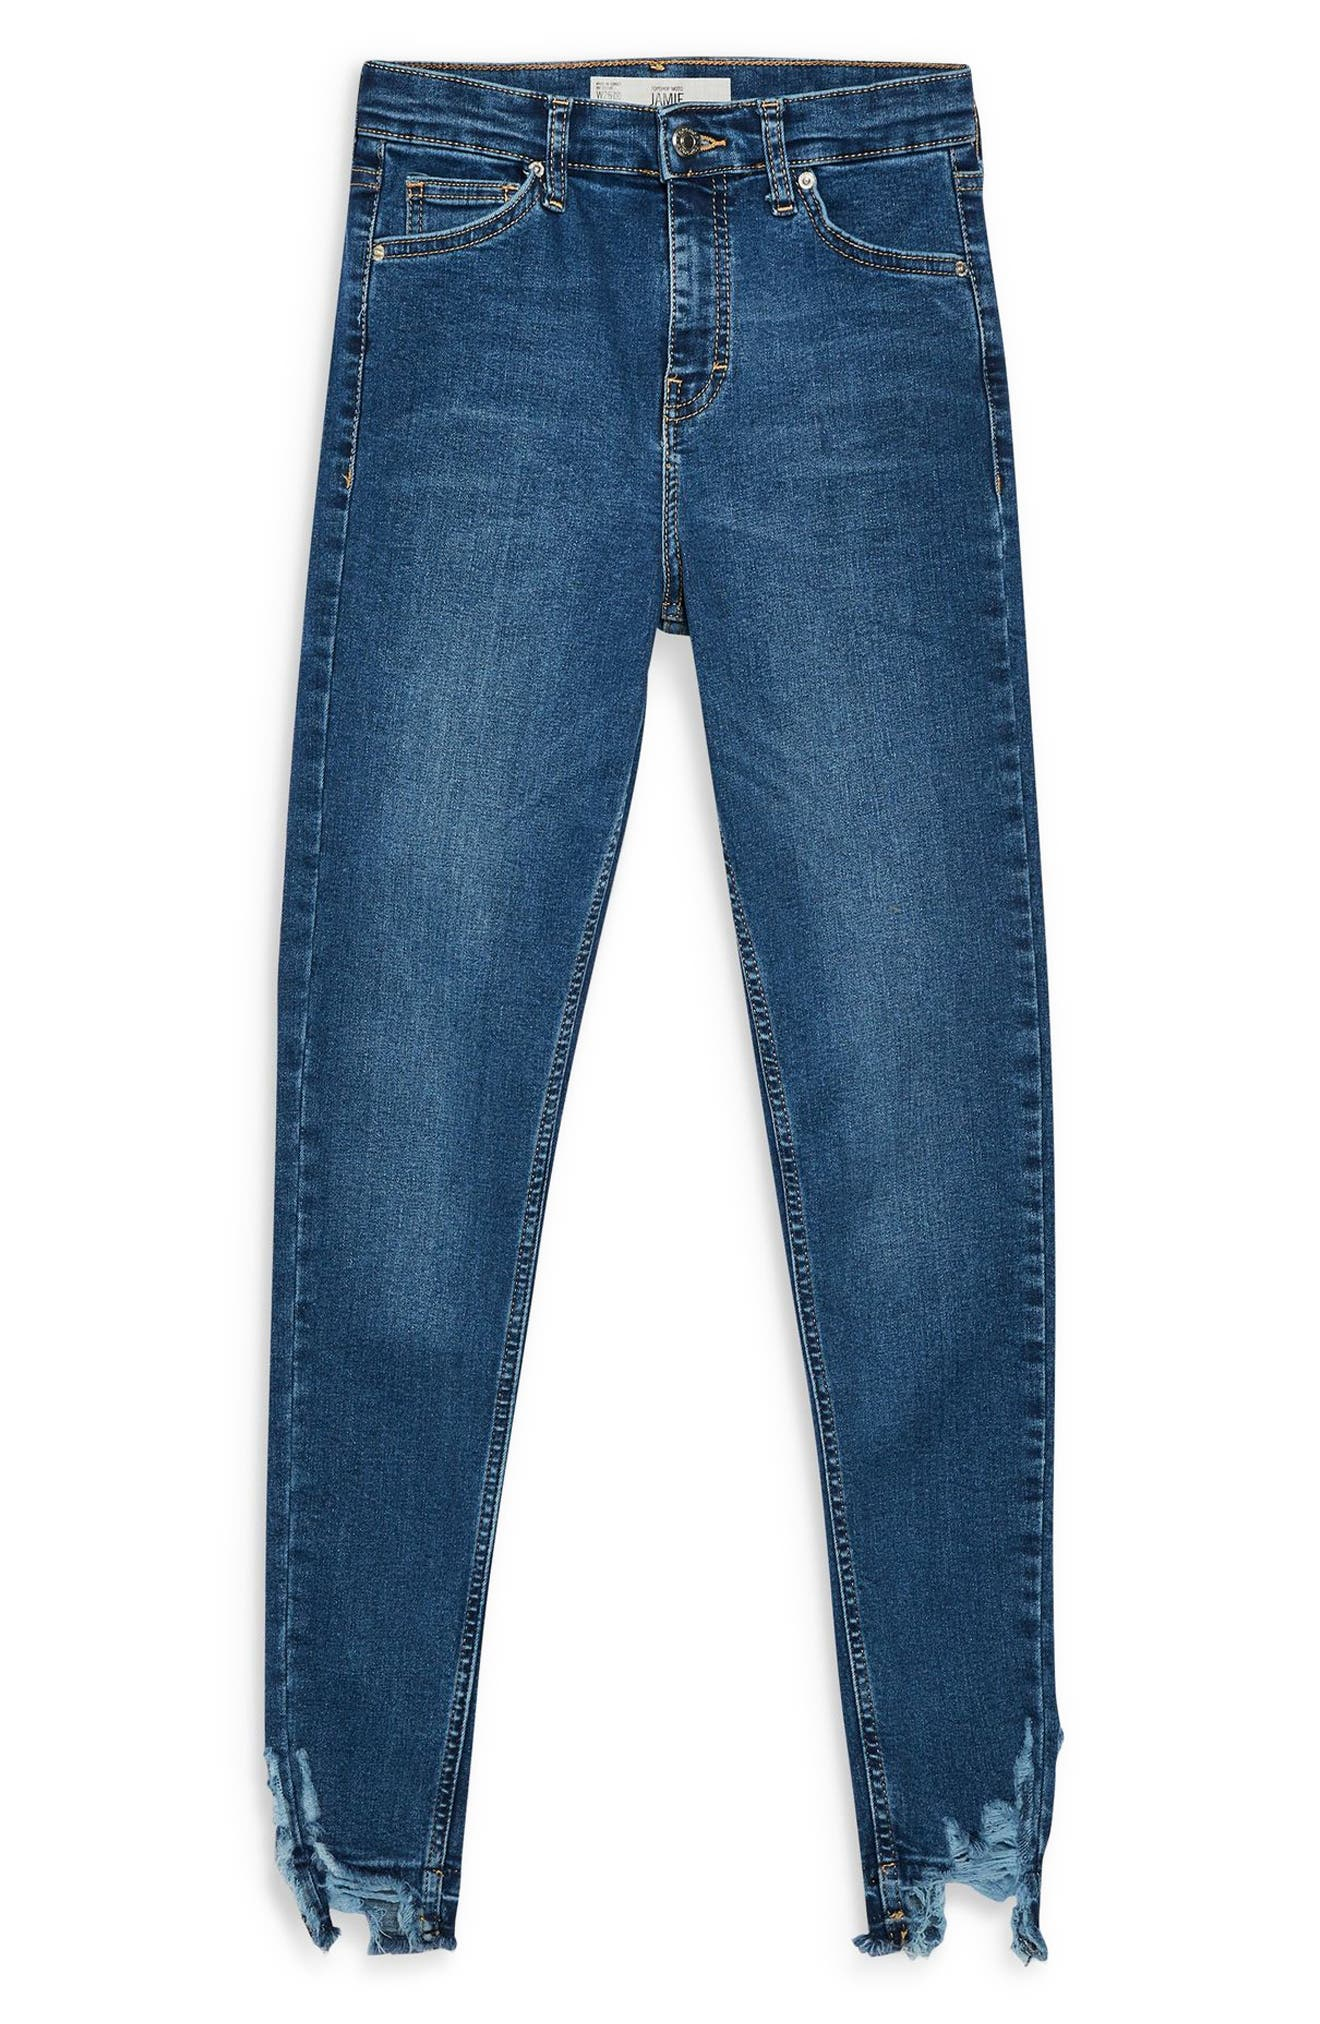 TOPSHOP, Jamie Rip Hem Jeans, Alternate thumbnail 3, color, MID DENIM